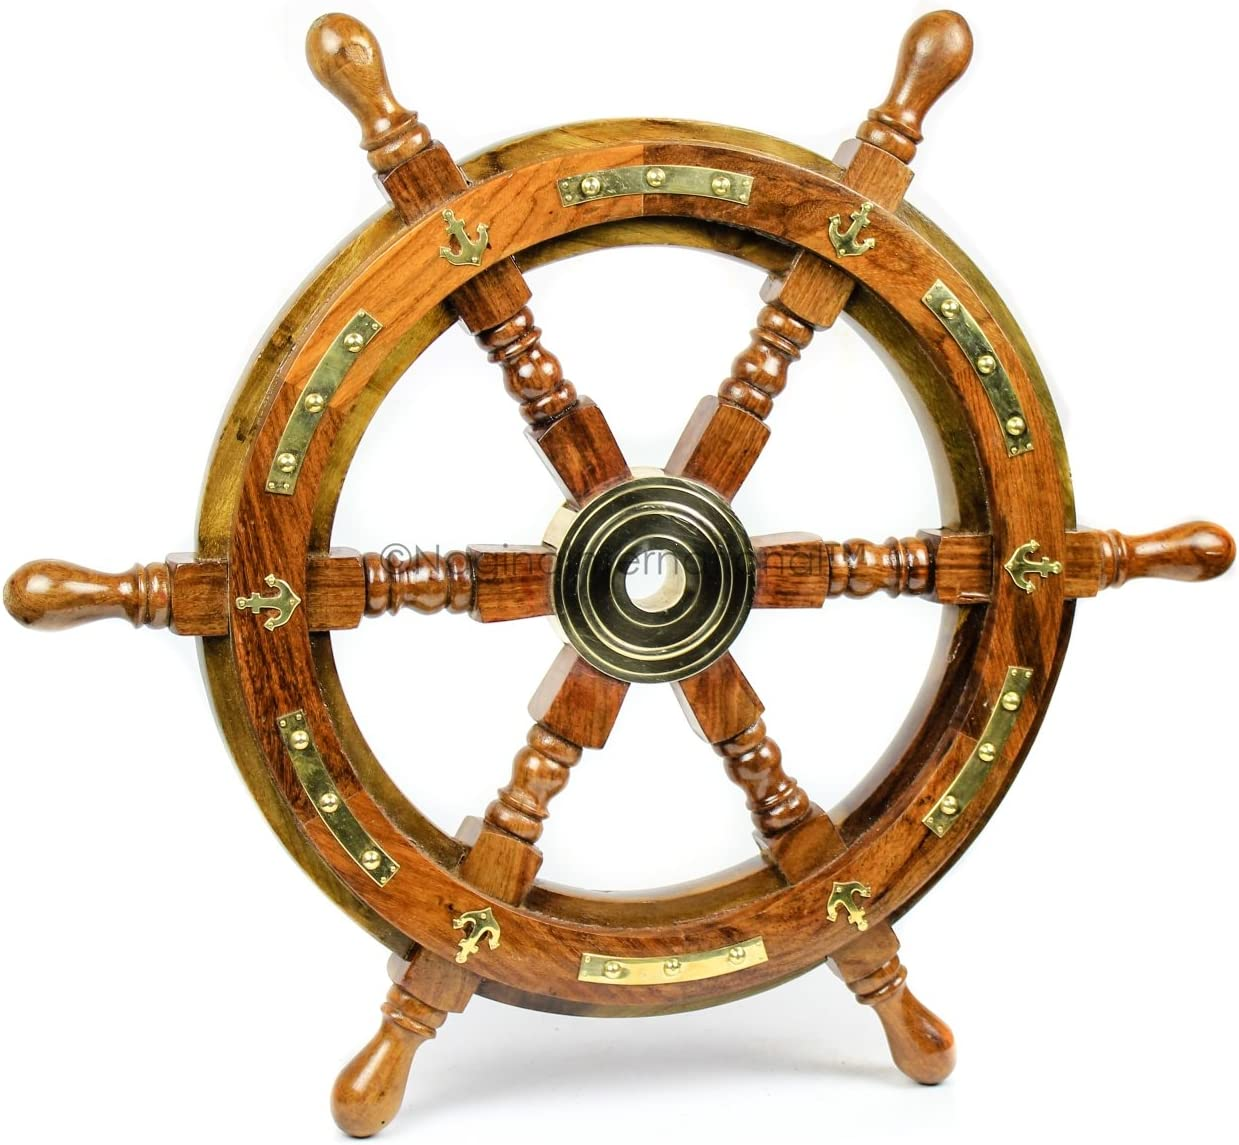 Nagina International Nautical Premium Sailor s Hand Crafted Brass Wooden Ship Wheel Luxury Gift Decor Boat Collectibles 16 Inches, Anchor Strip